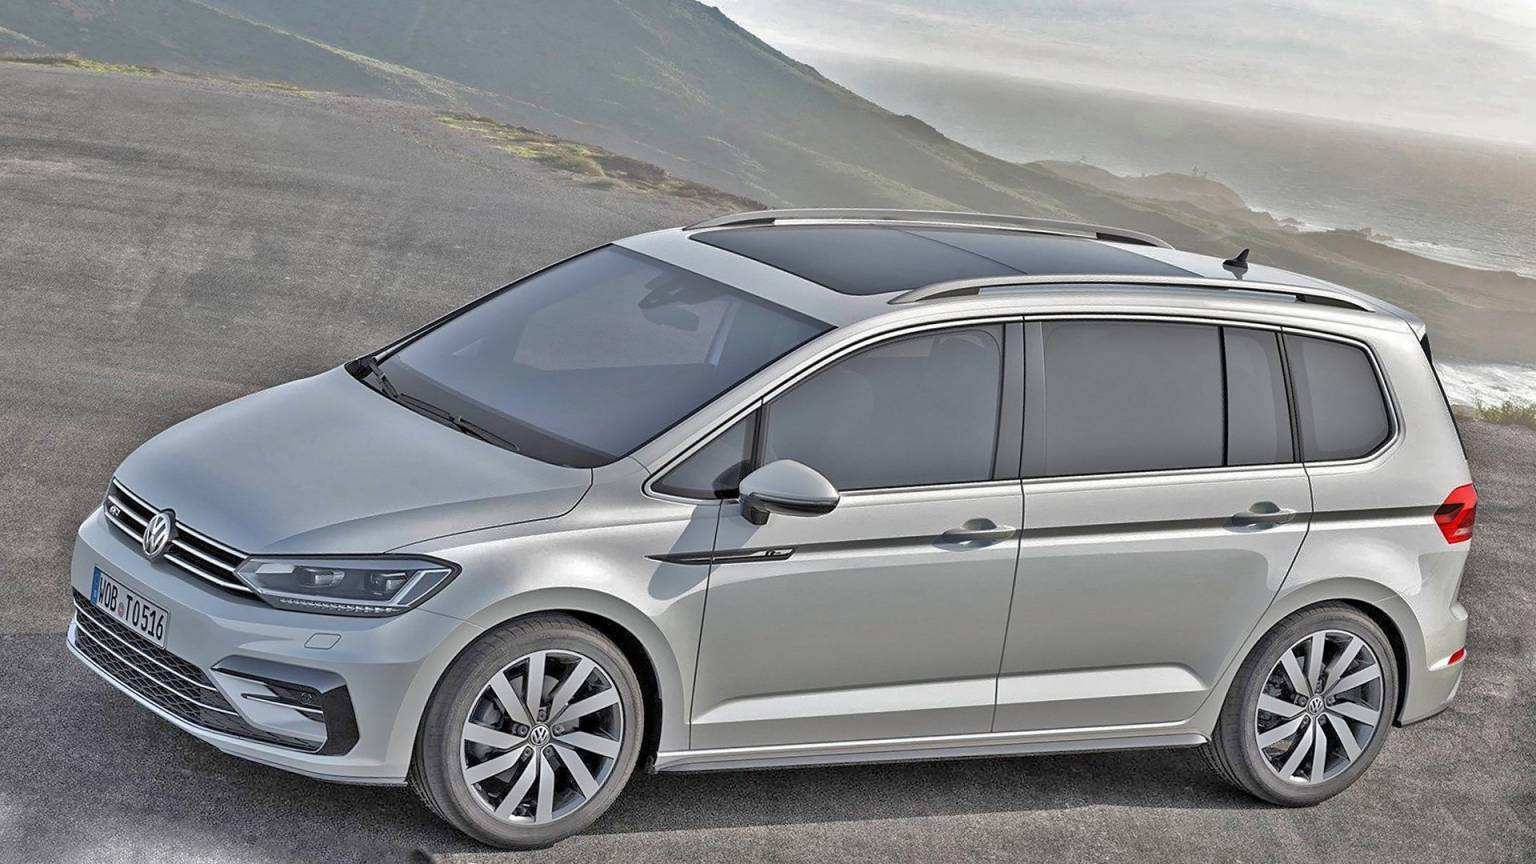 61 The Best 2019 Volkswagen Sharan Redesign And Review